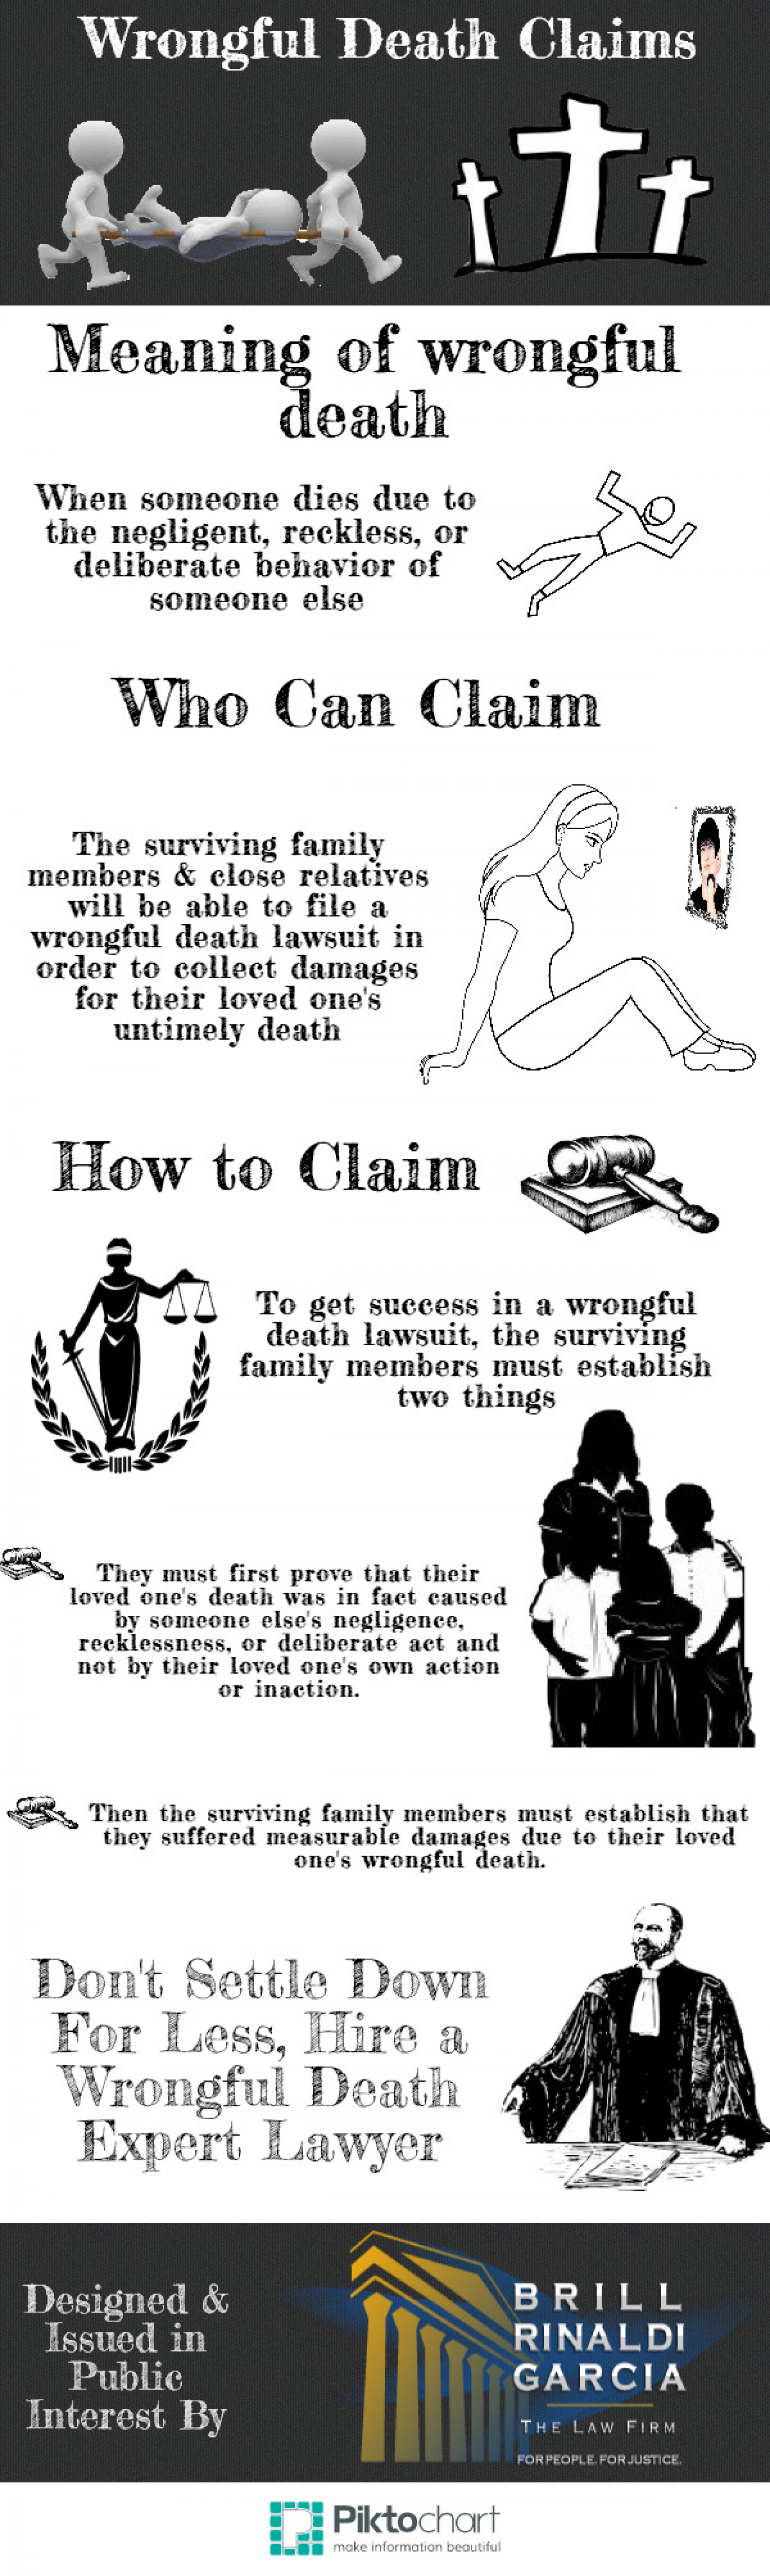 Wrongful Death Claims Infographic